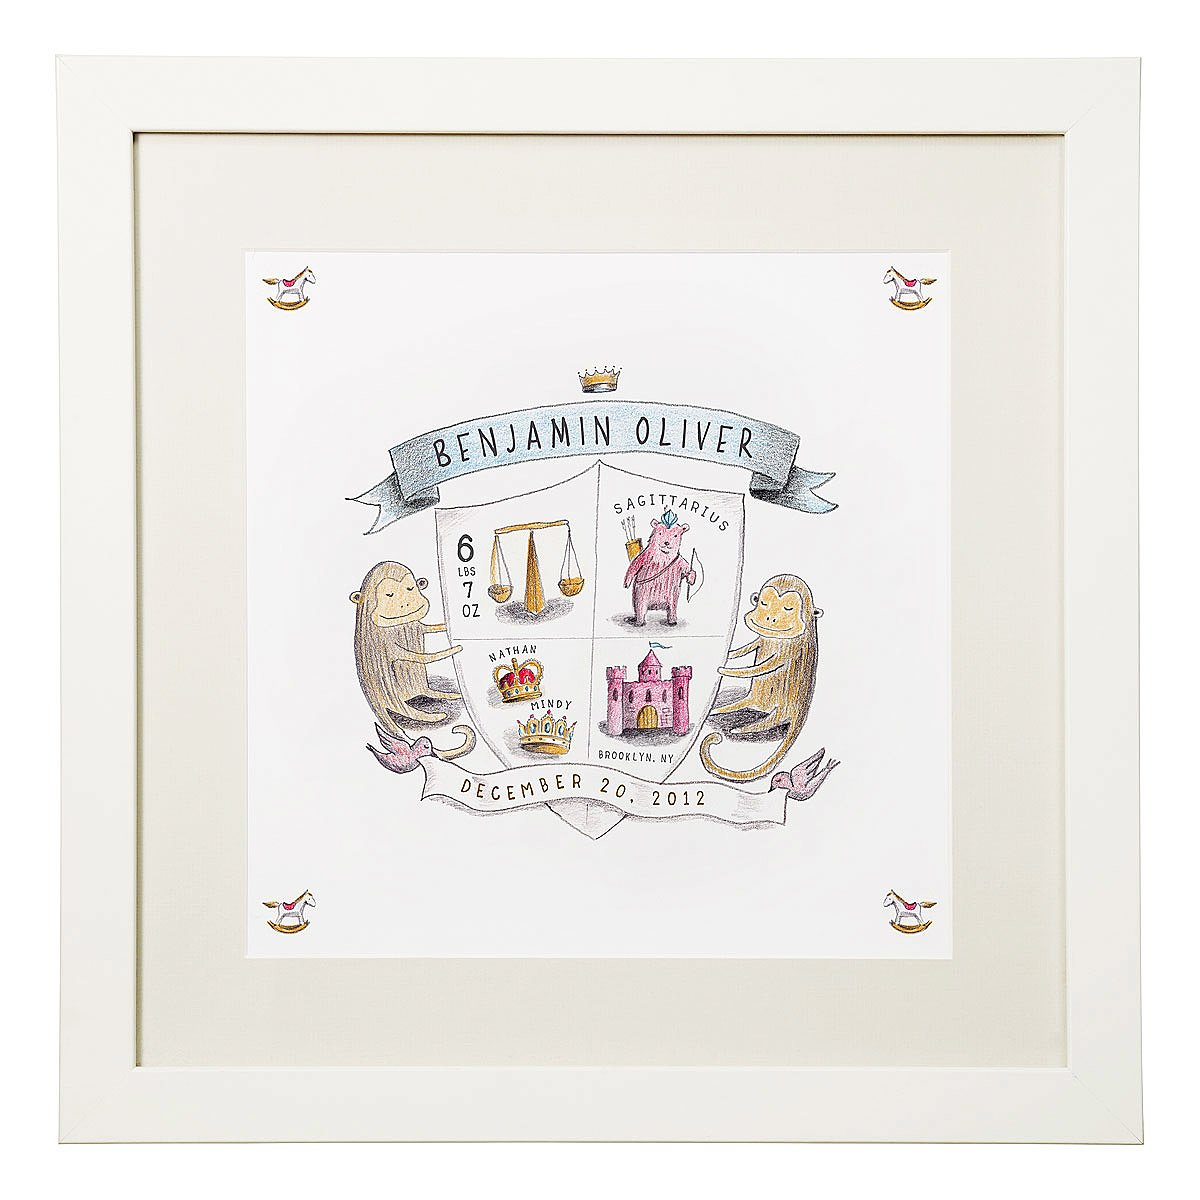 Coat of Arms Personalized Birth Announcement – Personalized Baby Announcement Gifts